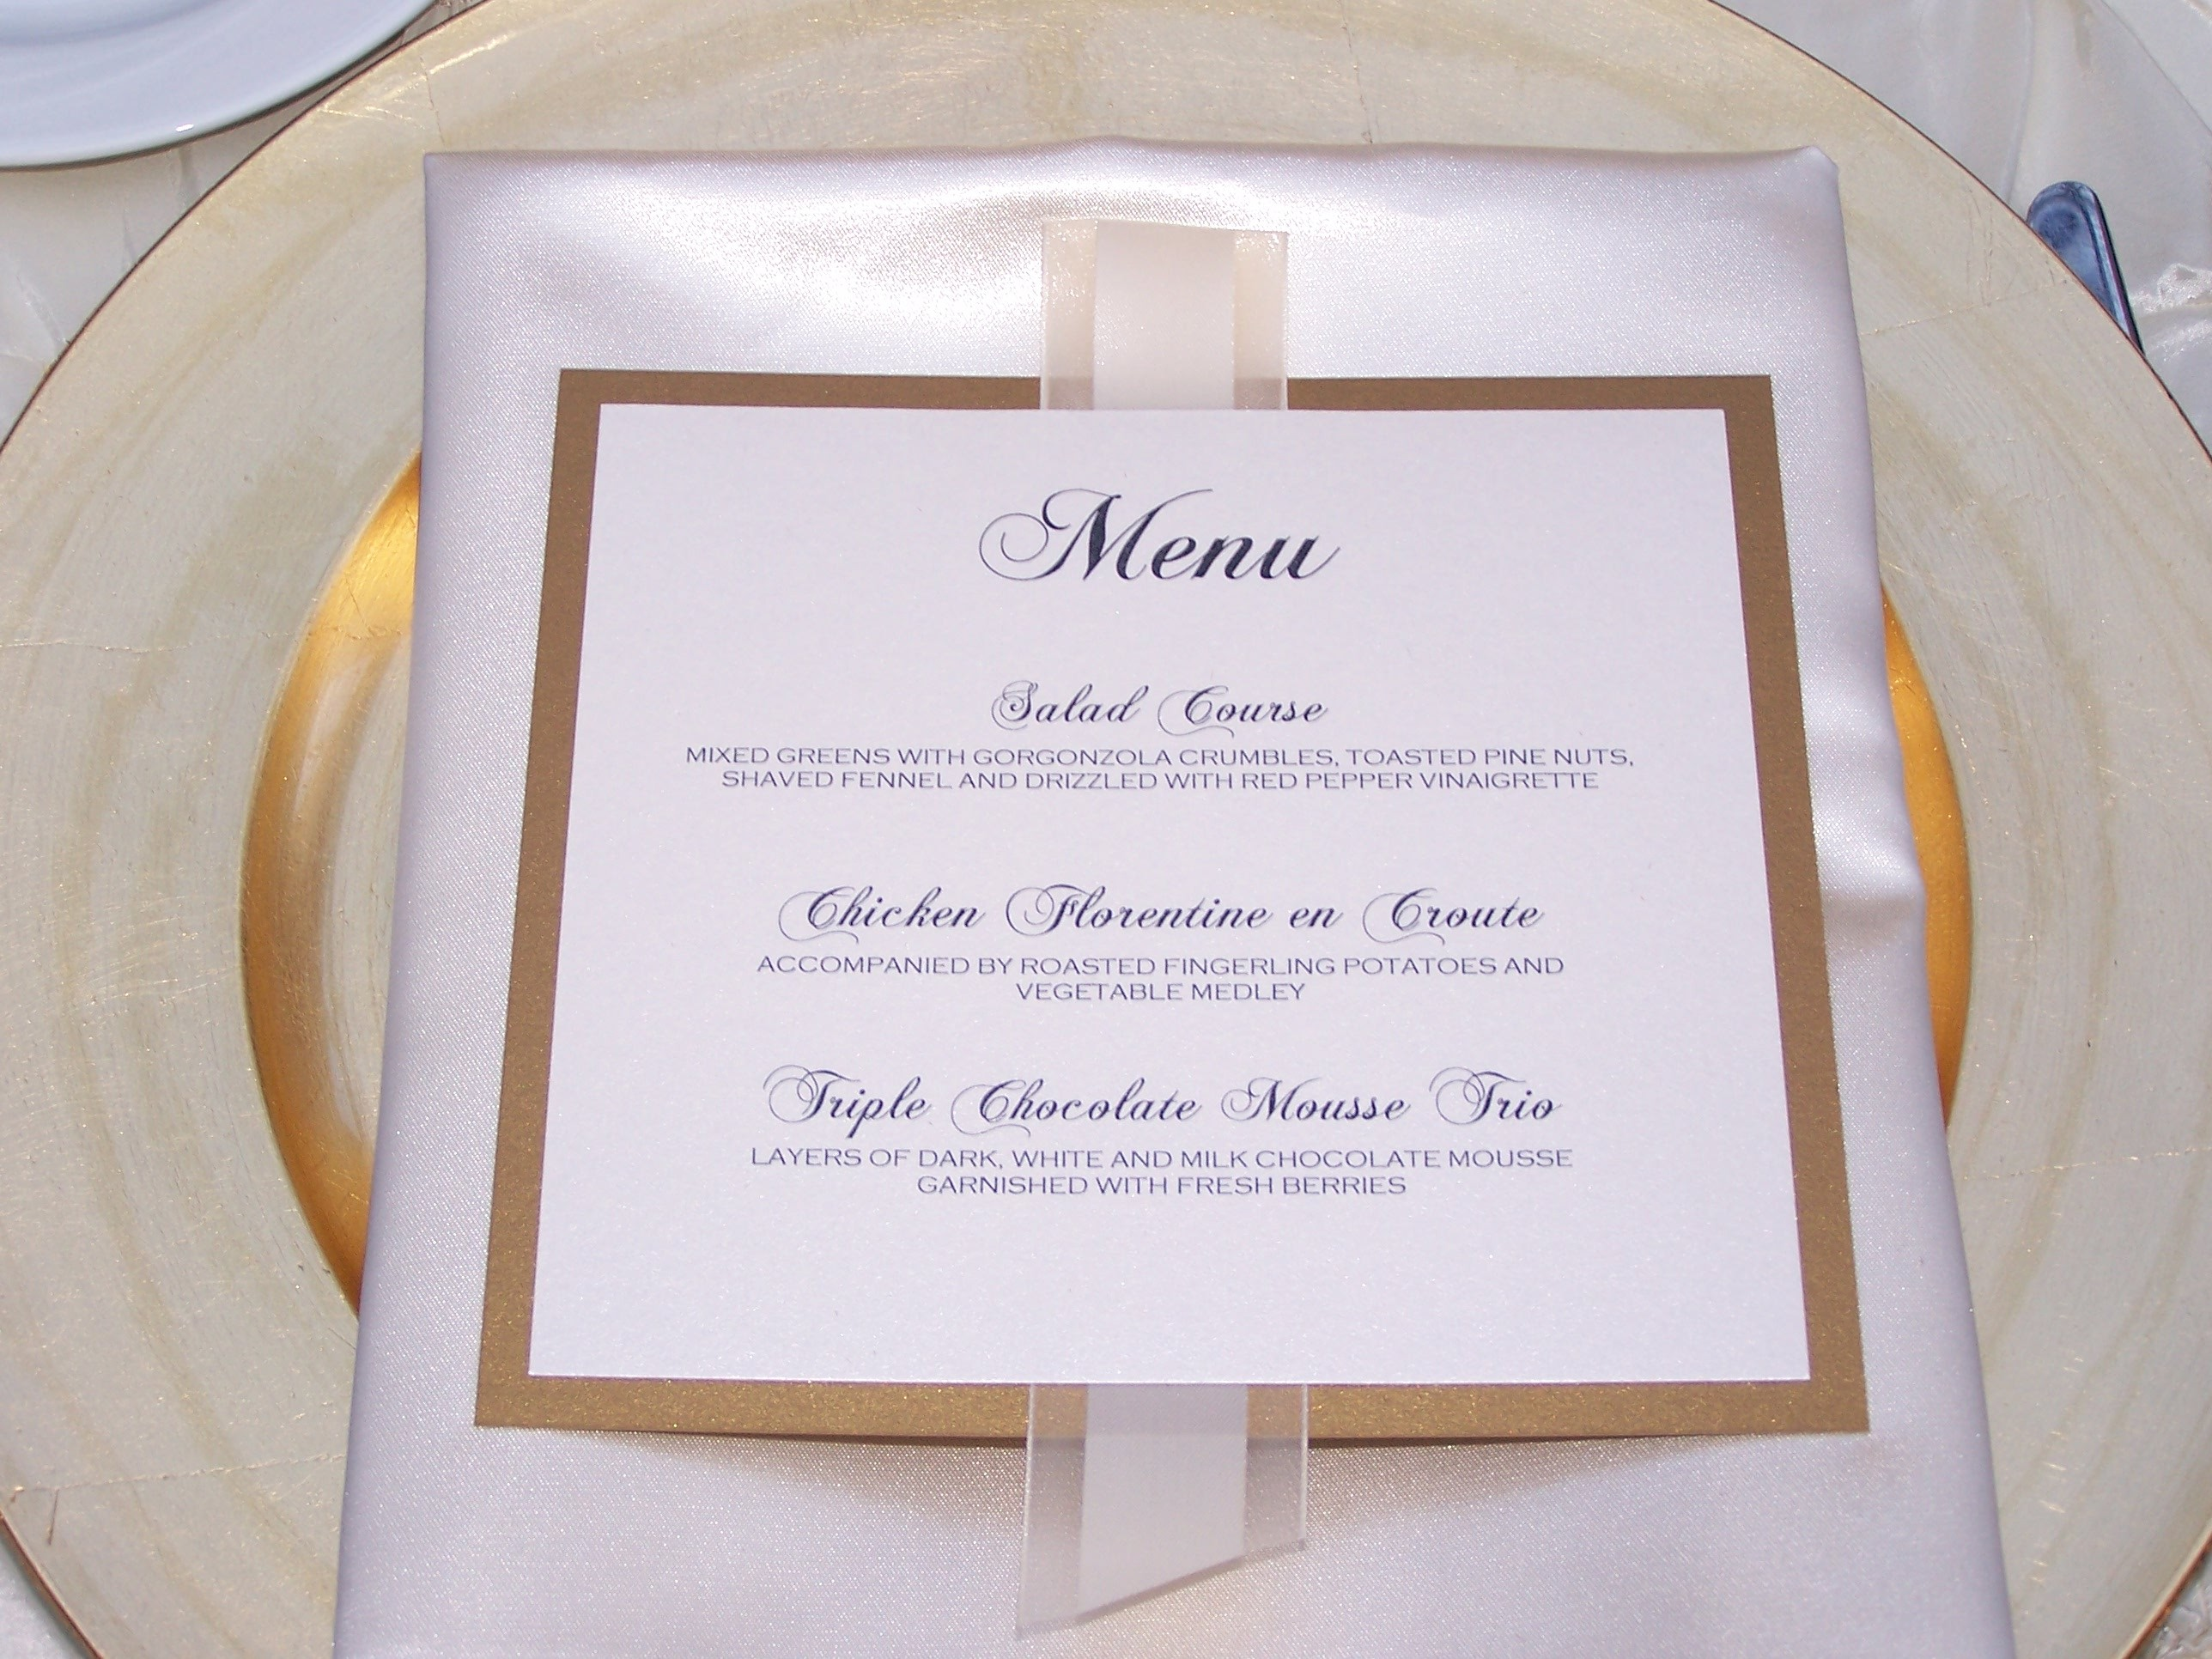 Reception, Flowers & Decor, Decor, Menu, Napkin, Charger, Place setting